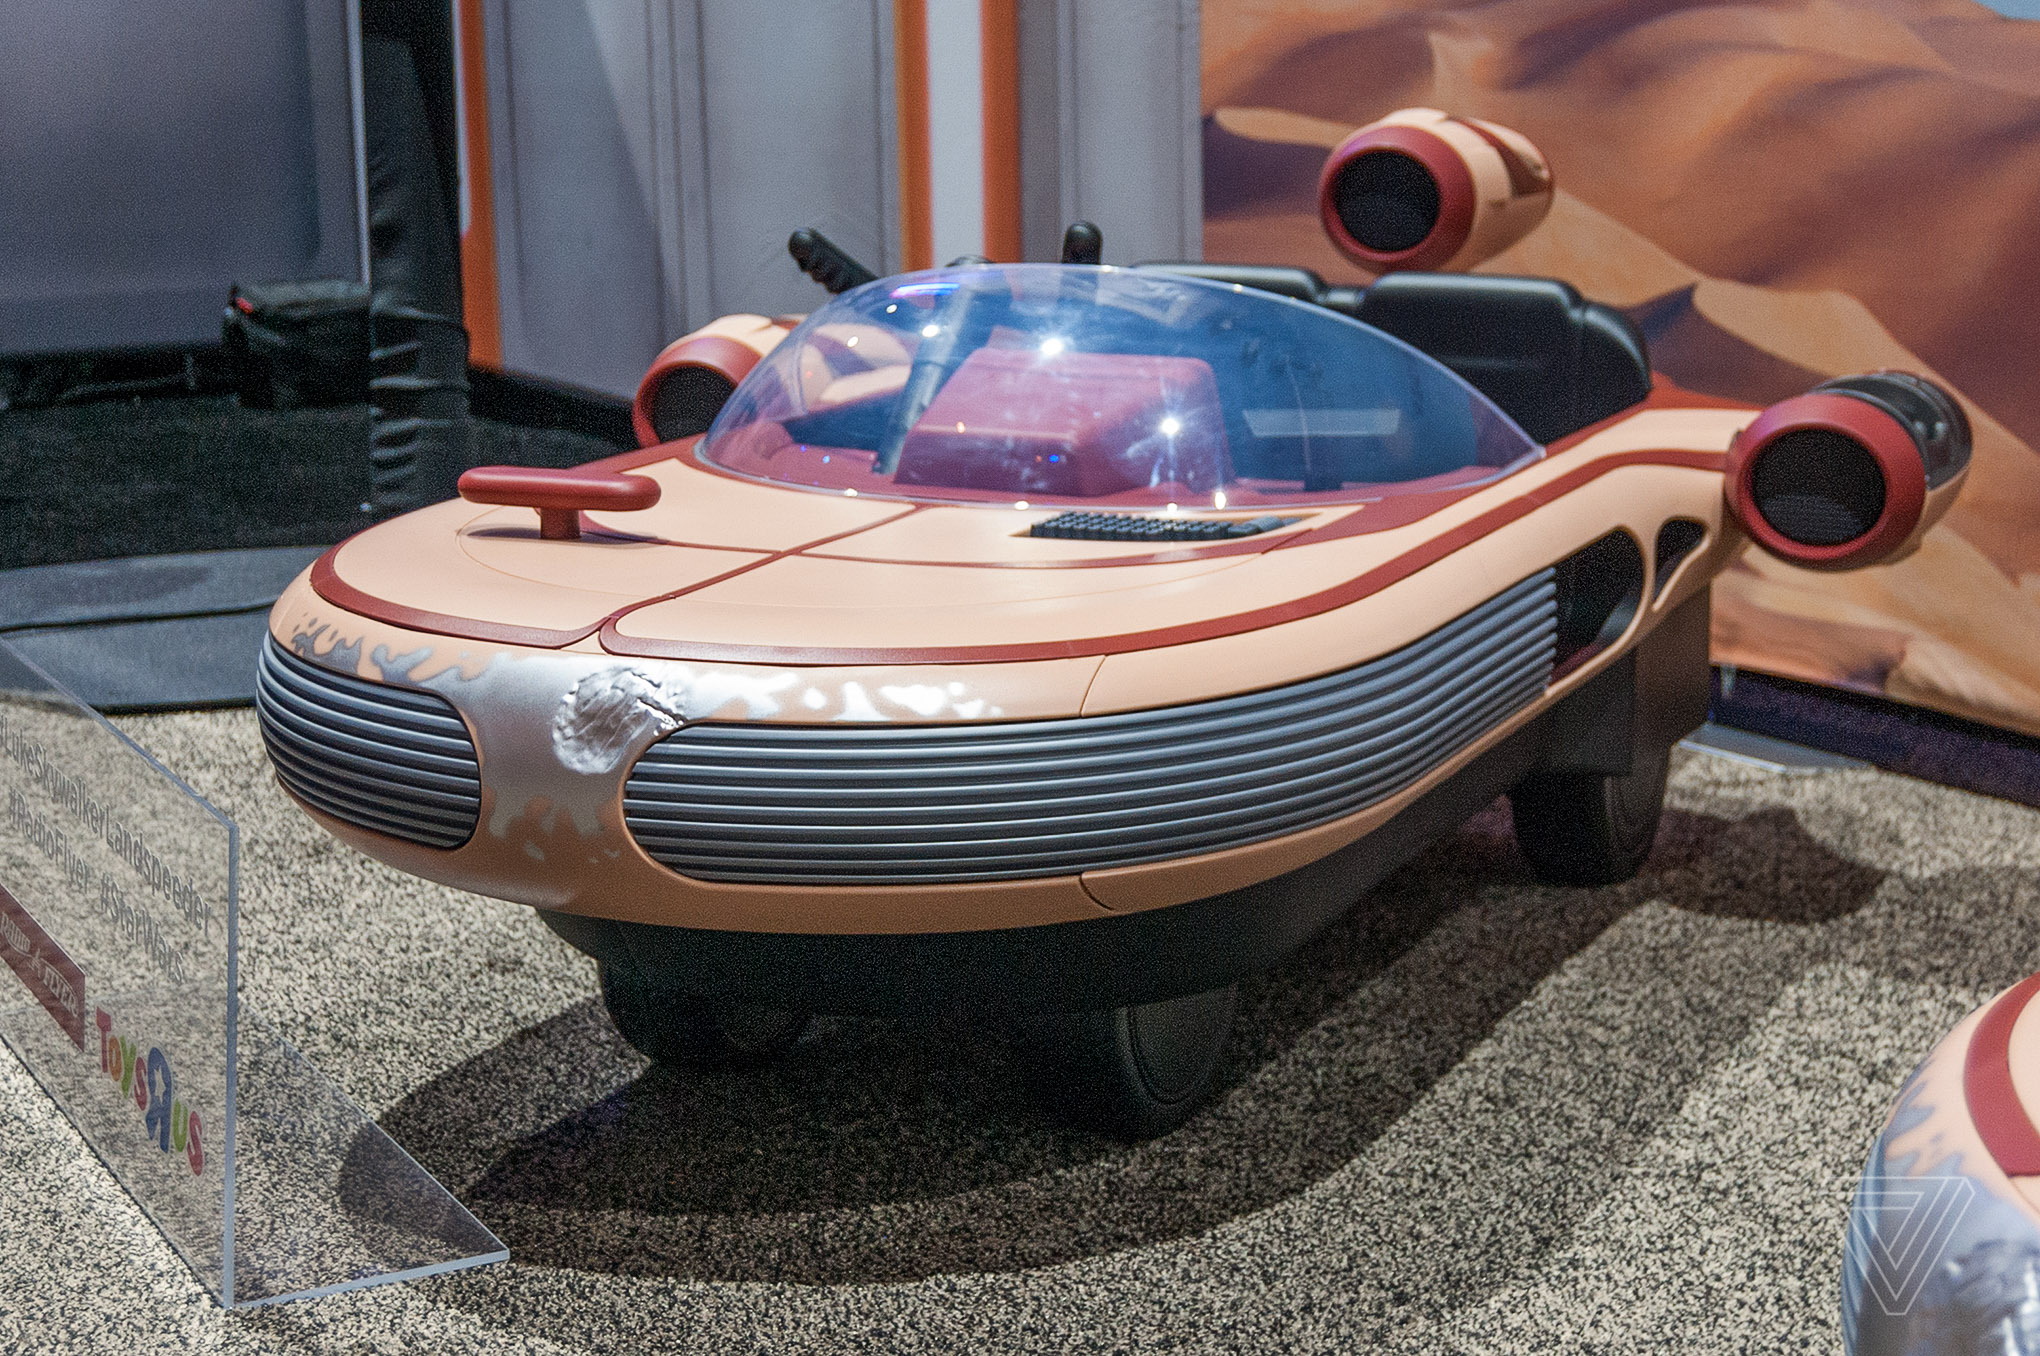 This $500 ridable Star Wars landspeeder is the most decadent Christmas present